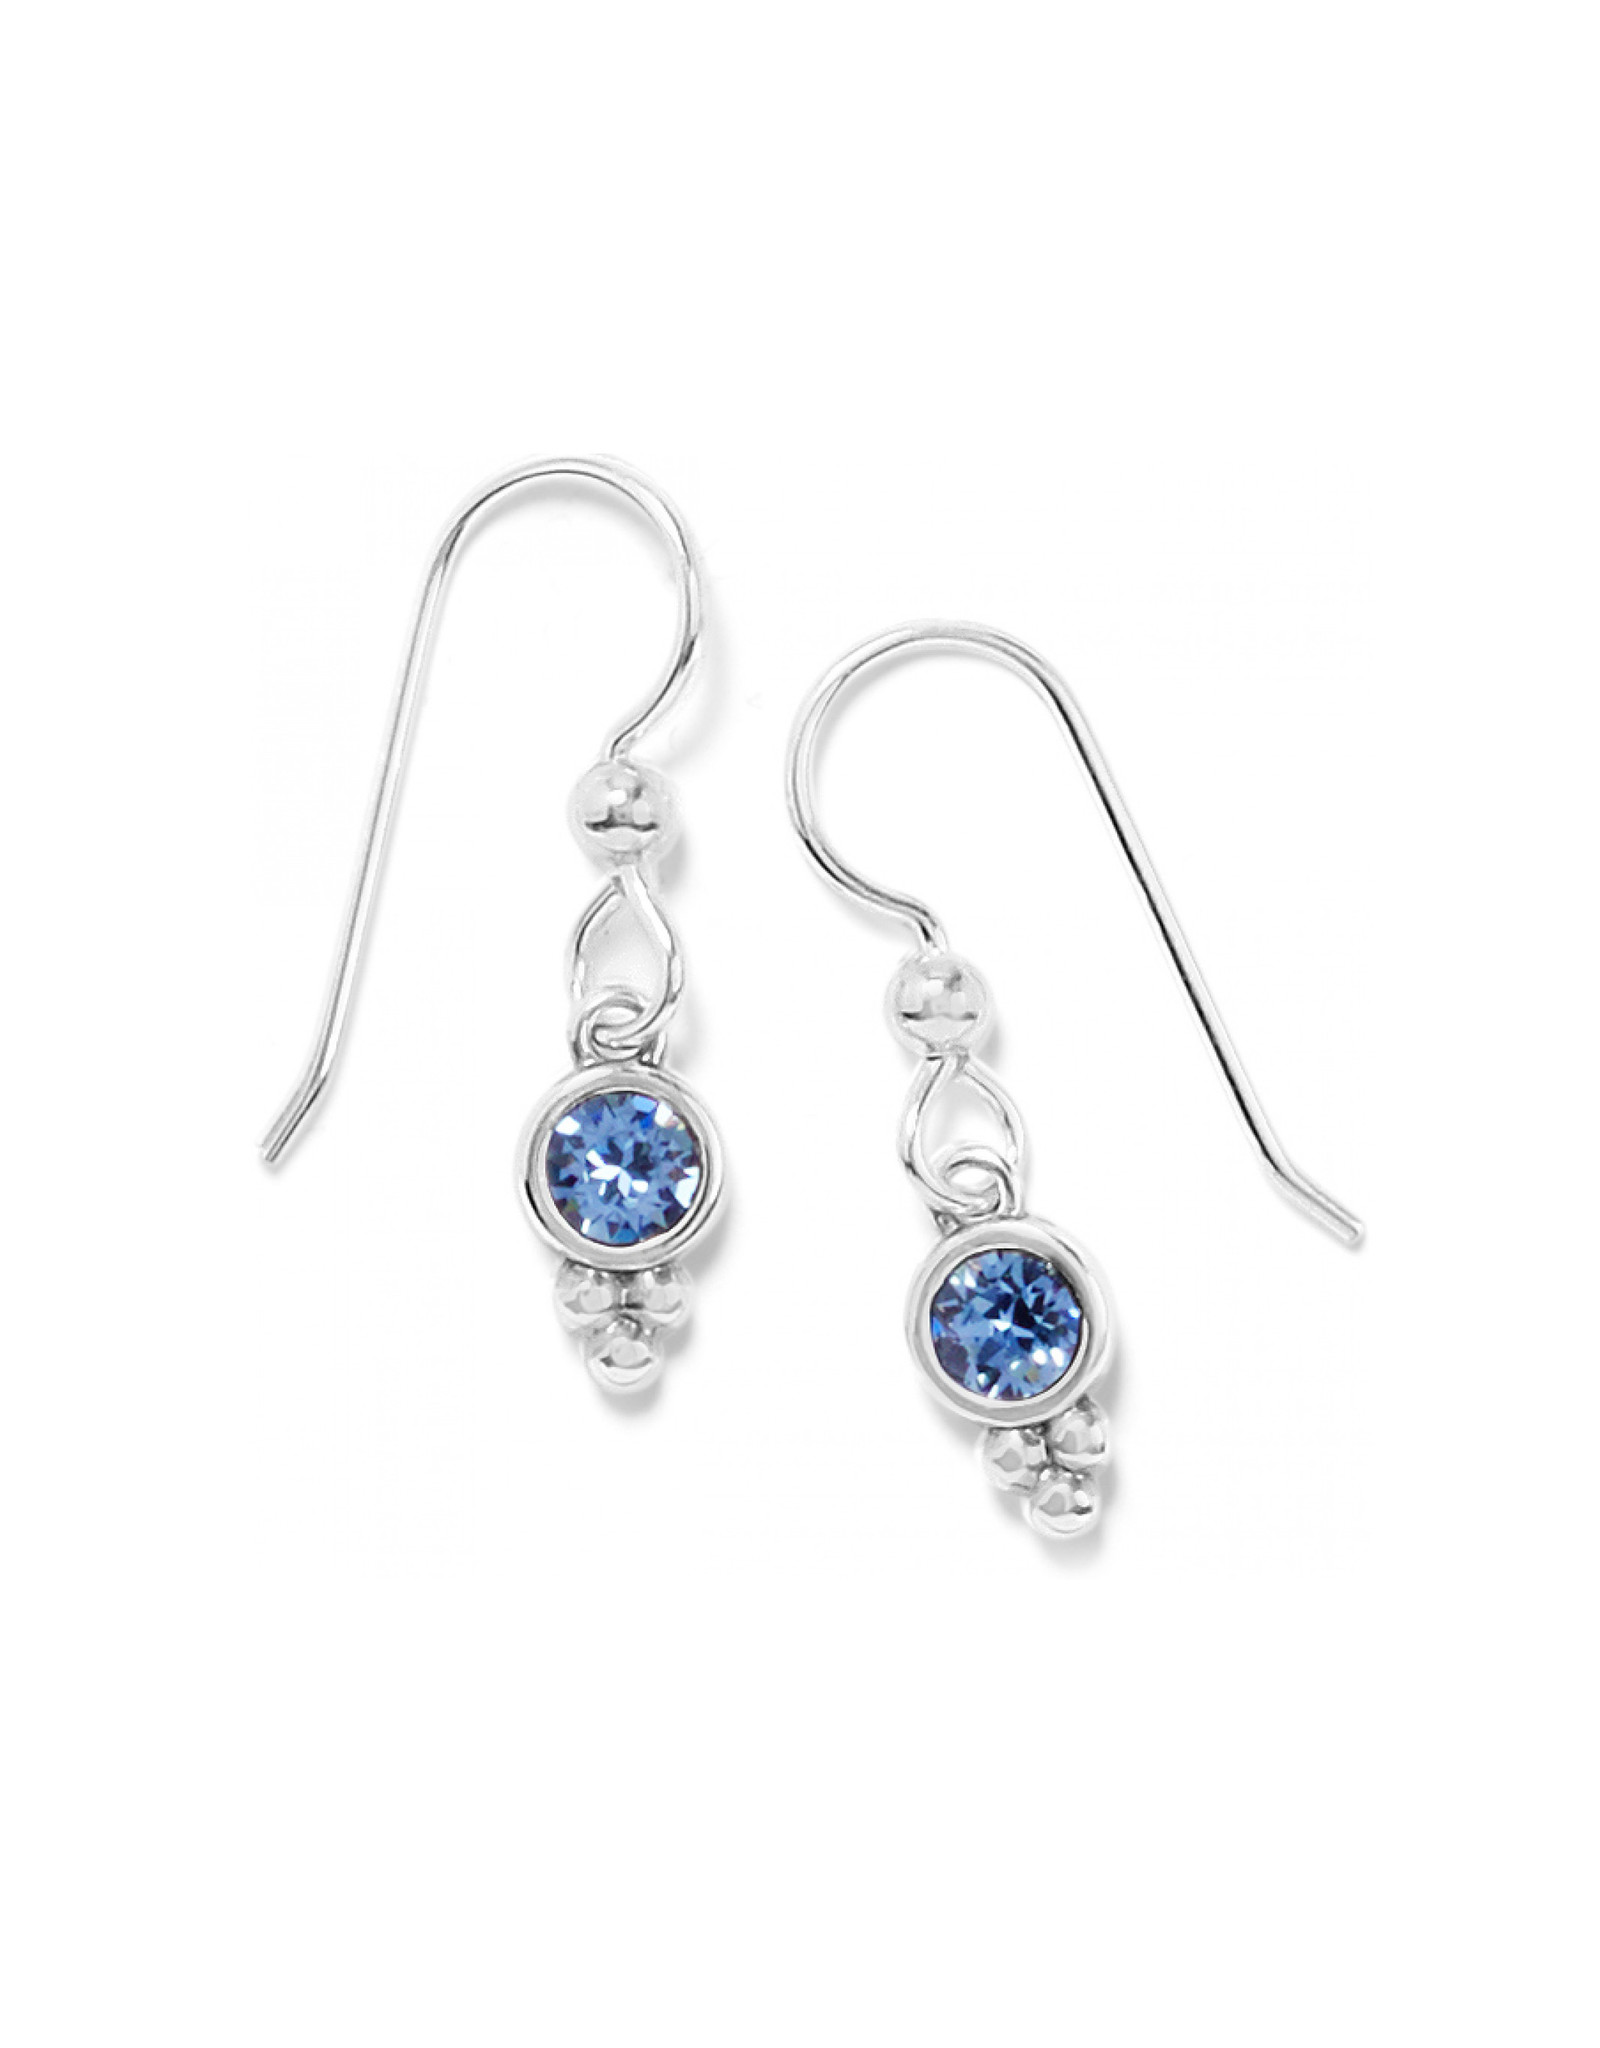 Brighton Color Drops French Wire Earrings - Blue